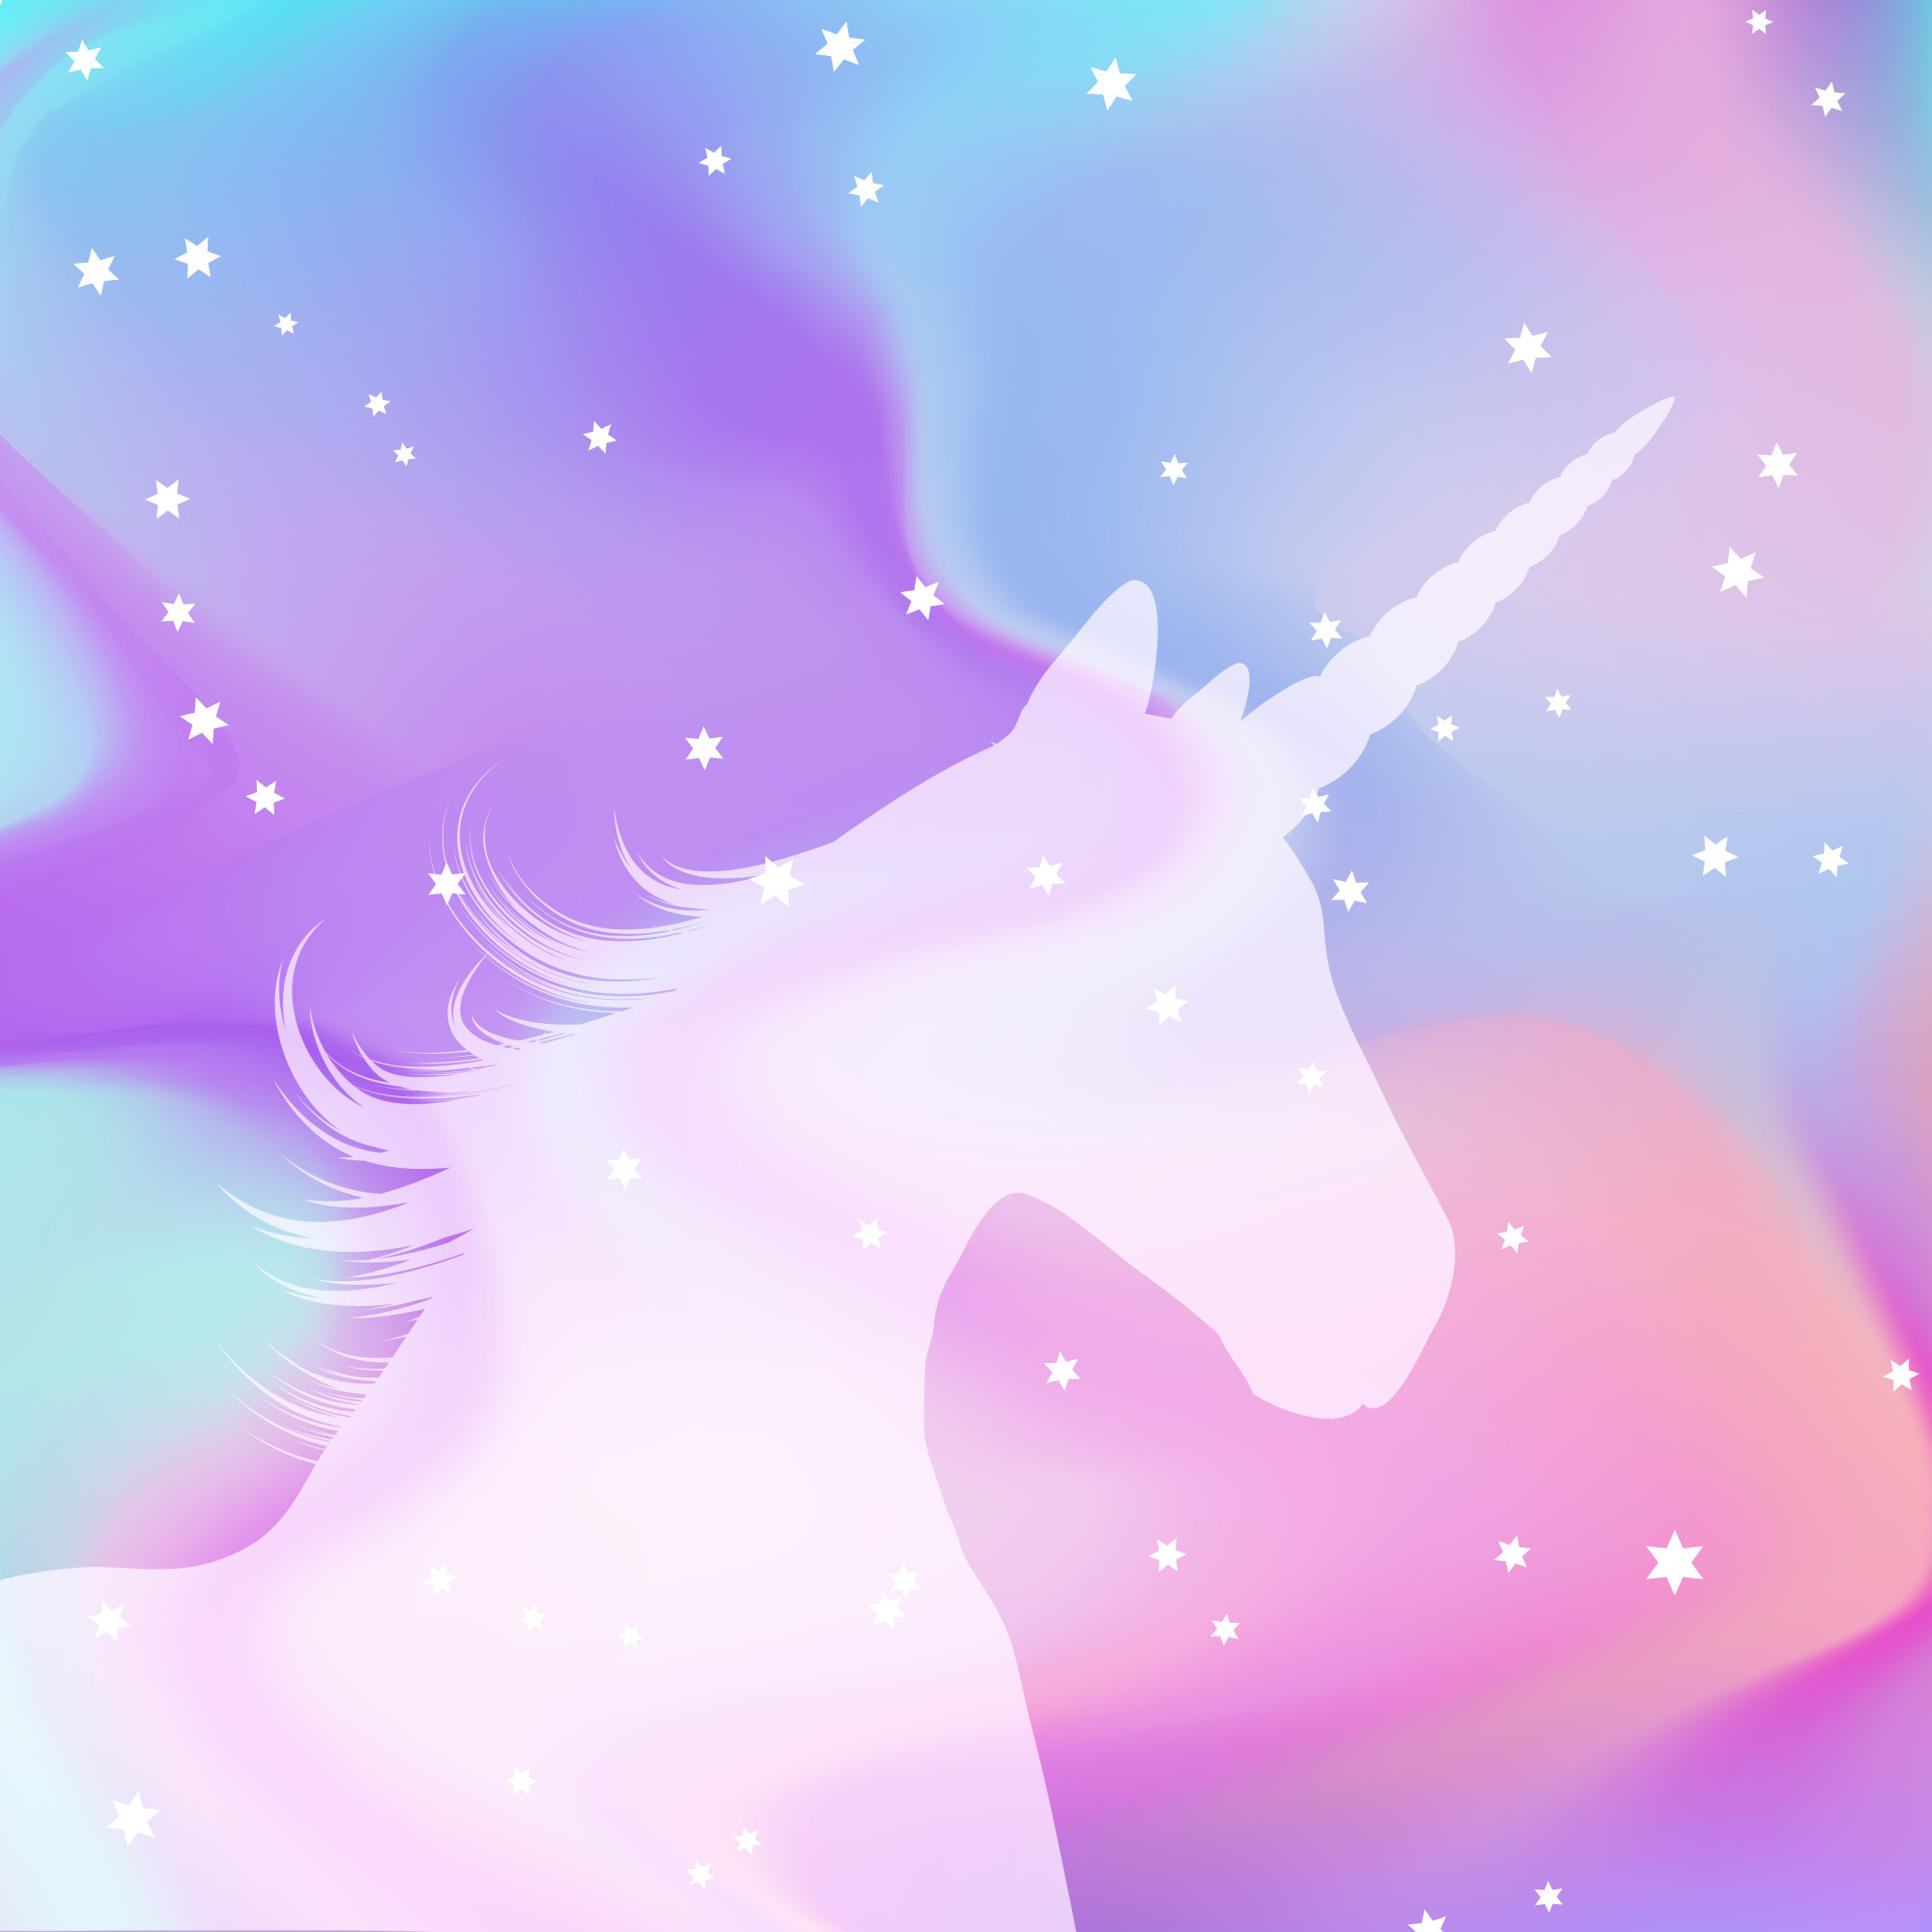 Silhouette of a unicorn on a holographic background